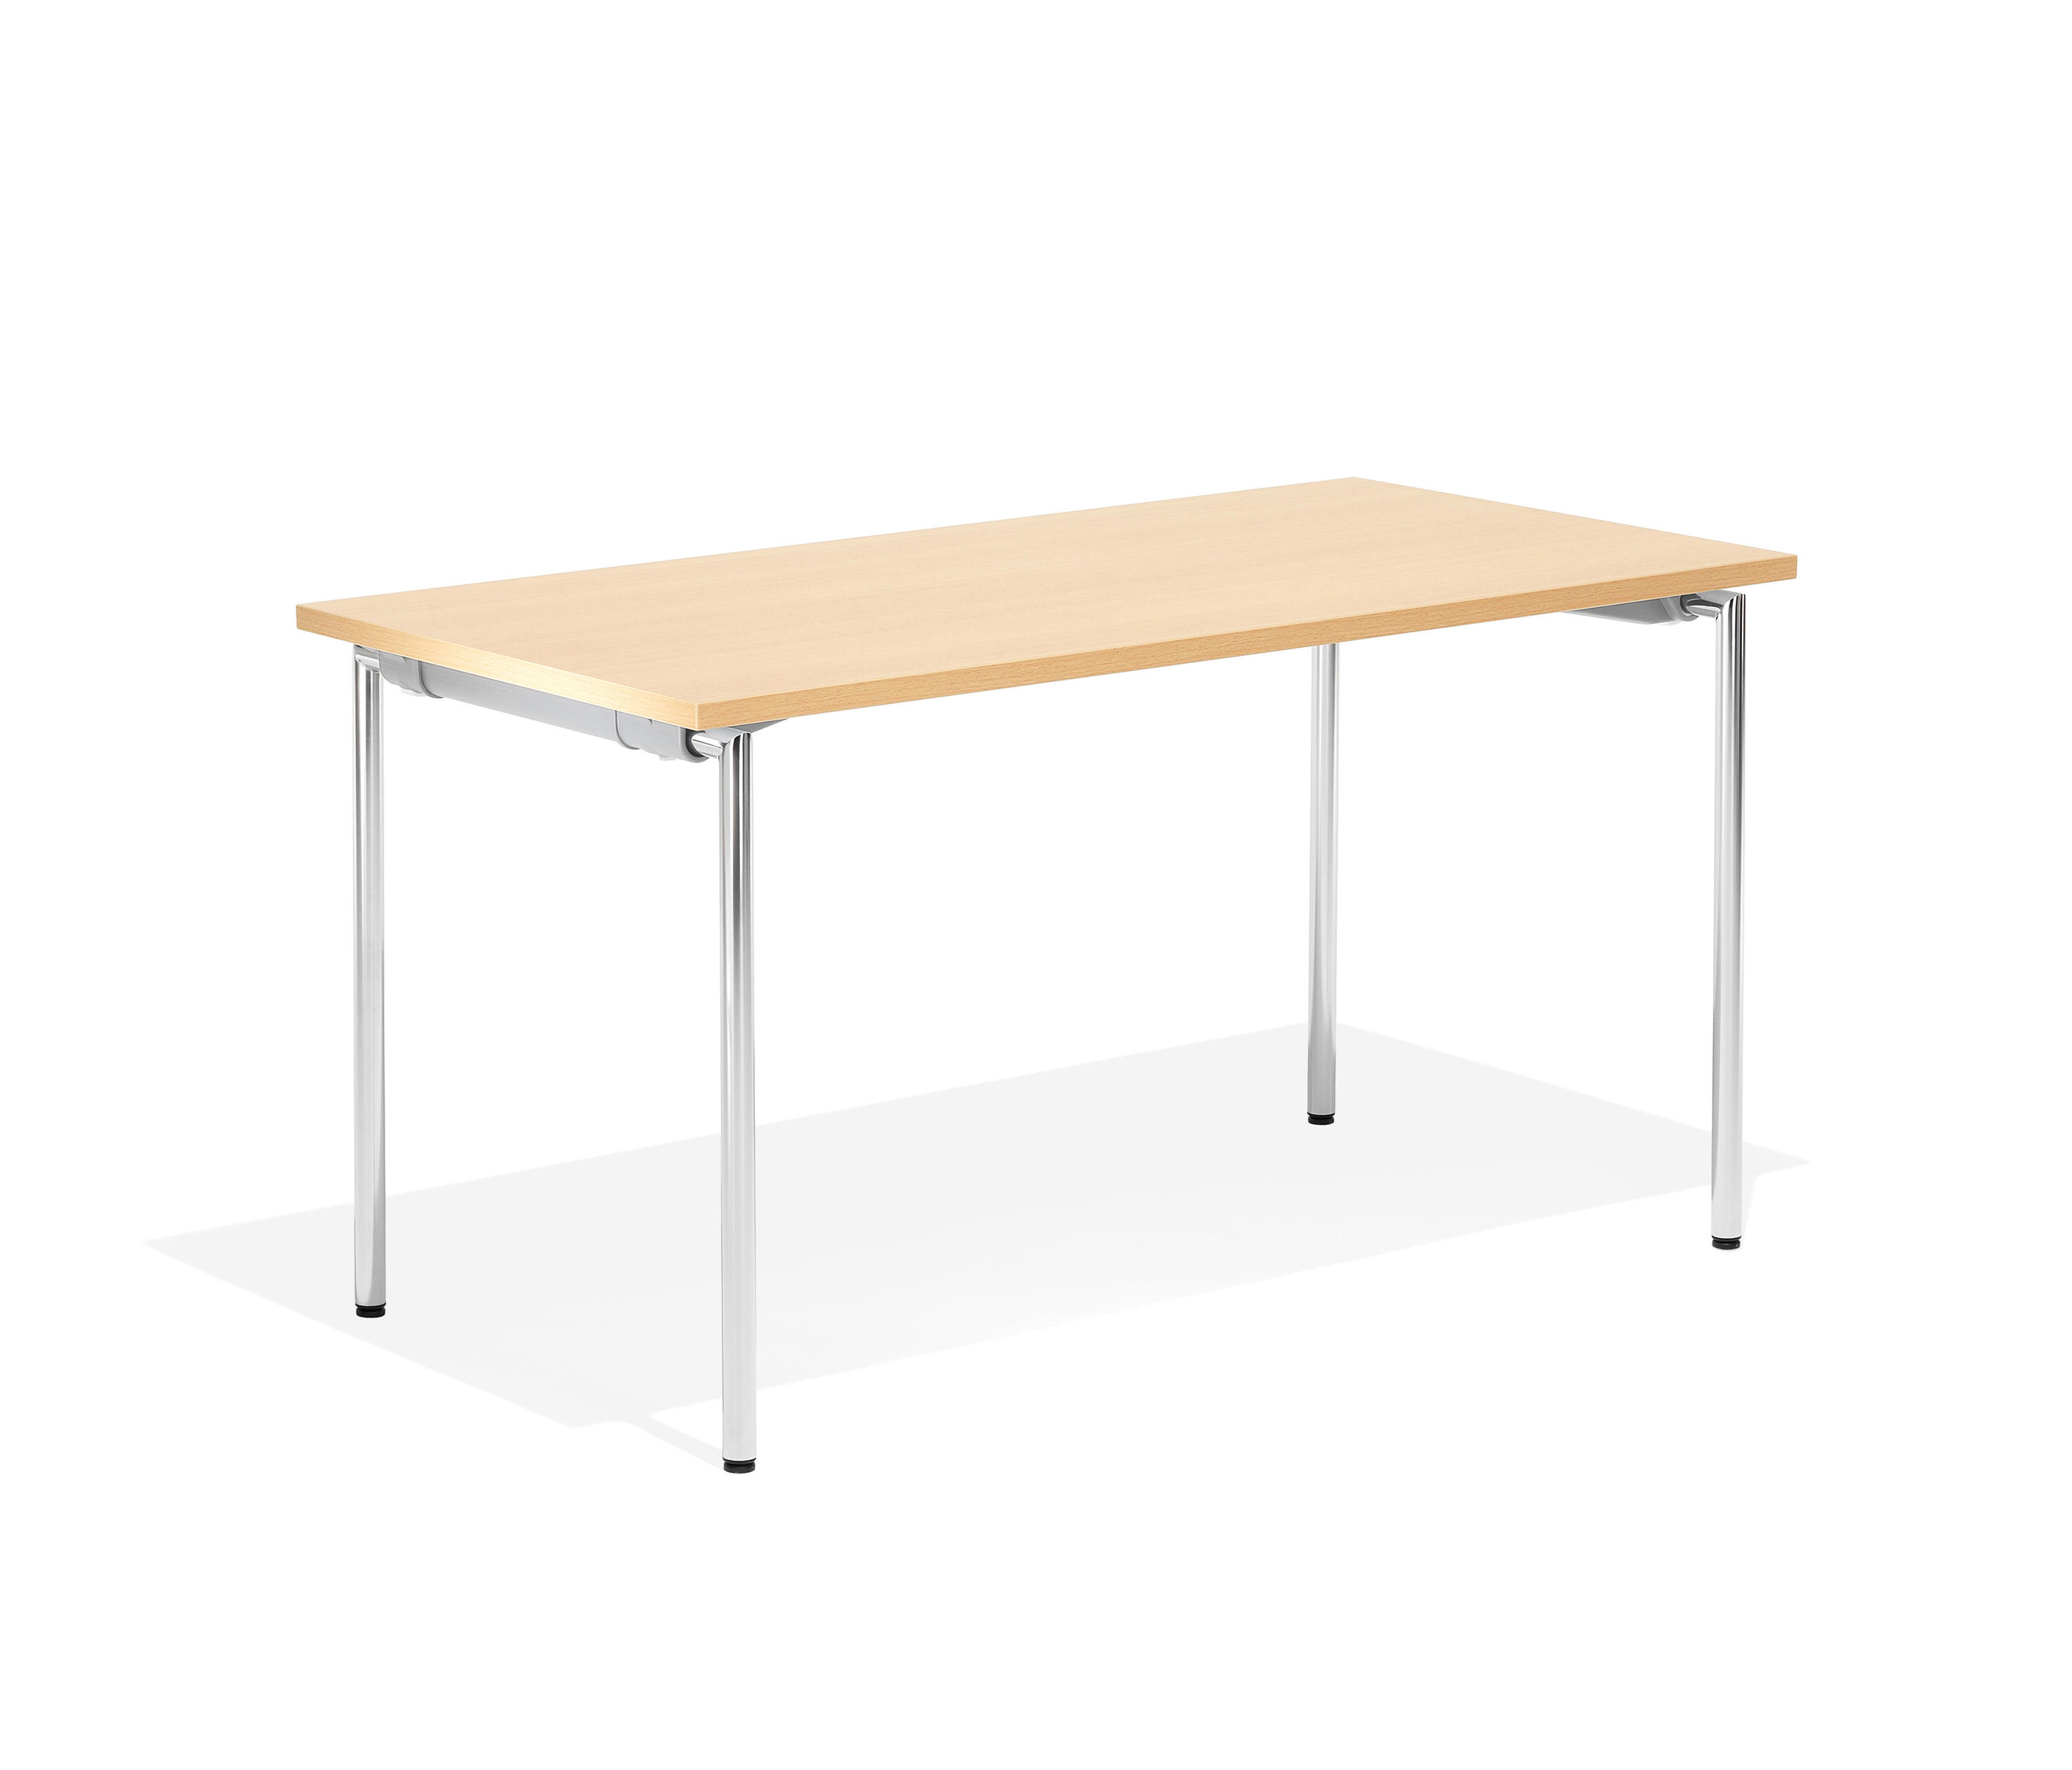 CONTRACT TABLES FOLDABLE High Quality Designer CONTRACT TABLES - Detachable conference table